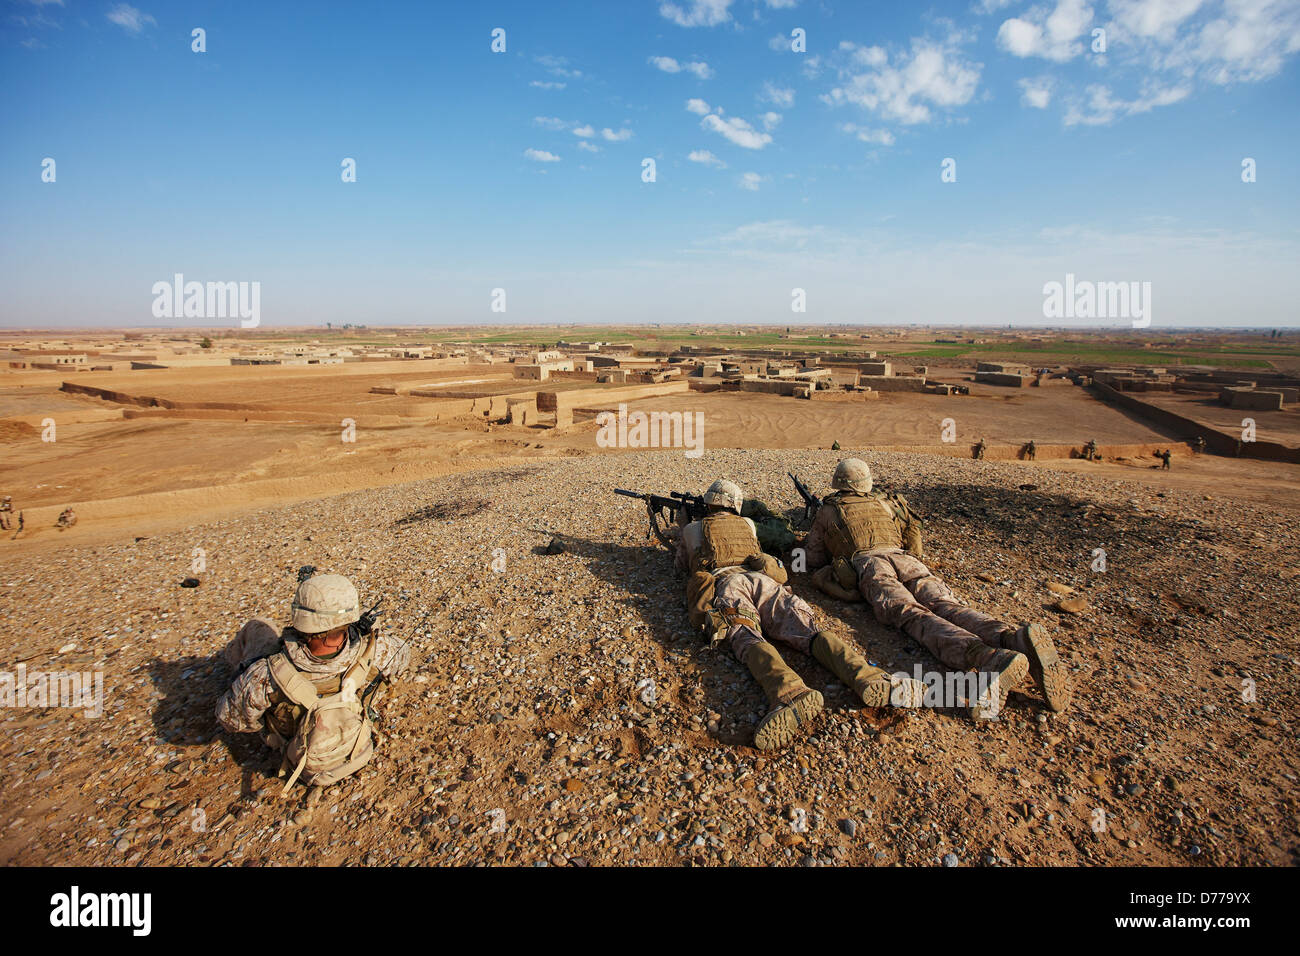 U.S. Marine Corps Designated Marksmen Overlook Town in Afghanistan's Helmand Province During Combat Operation - Stock Image